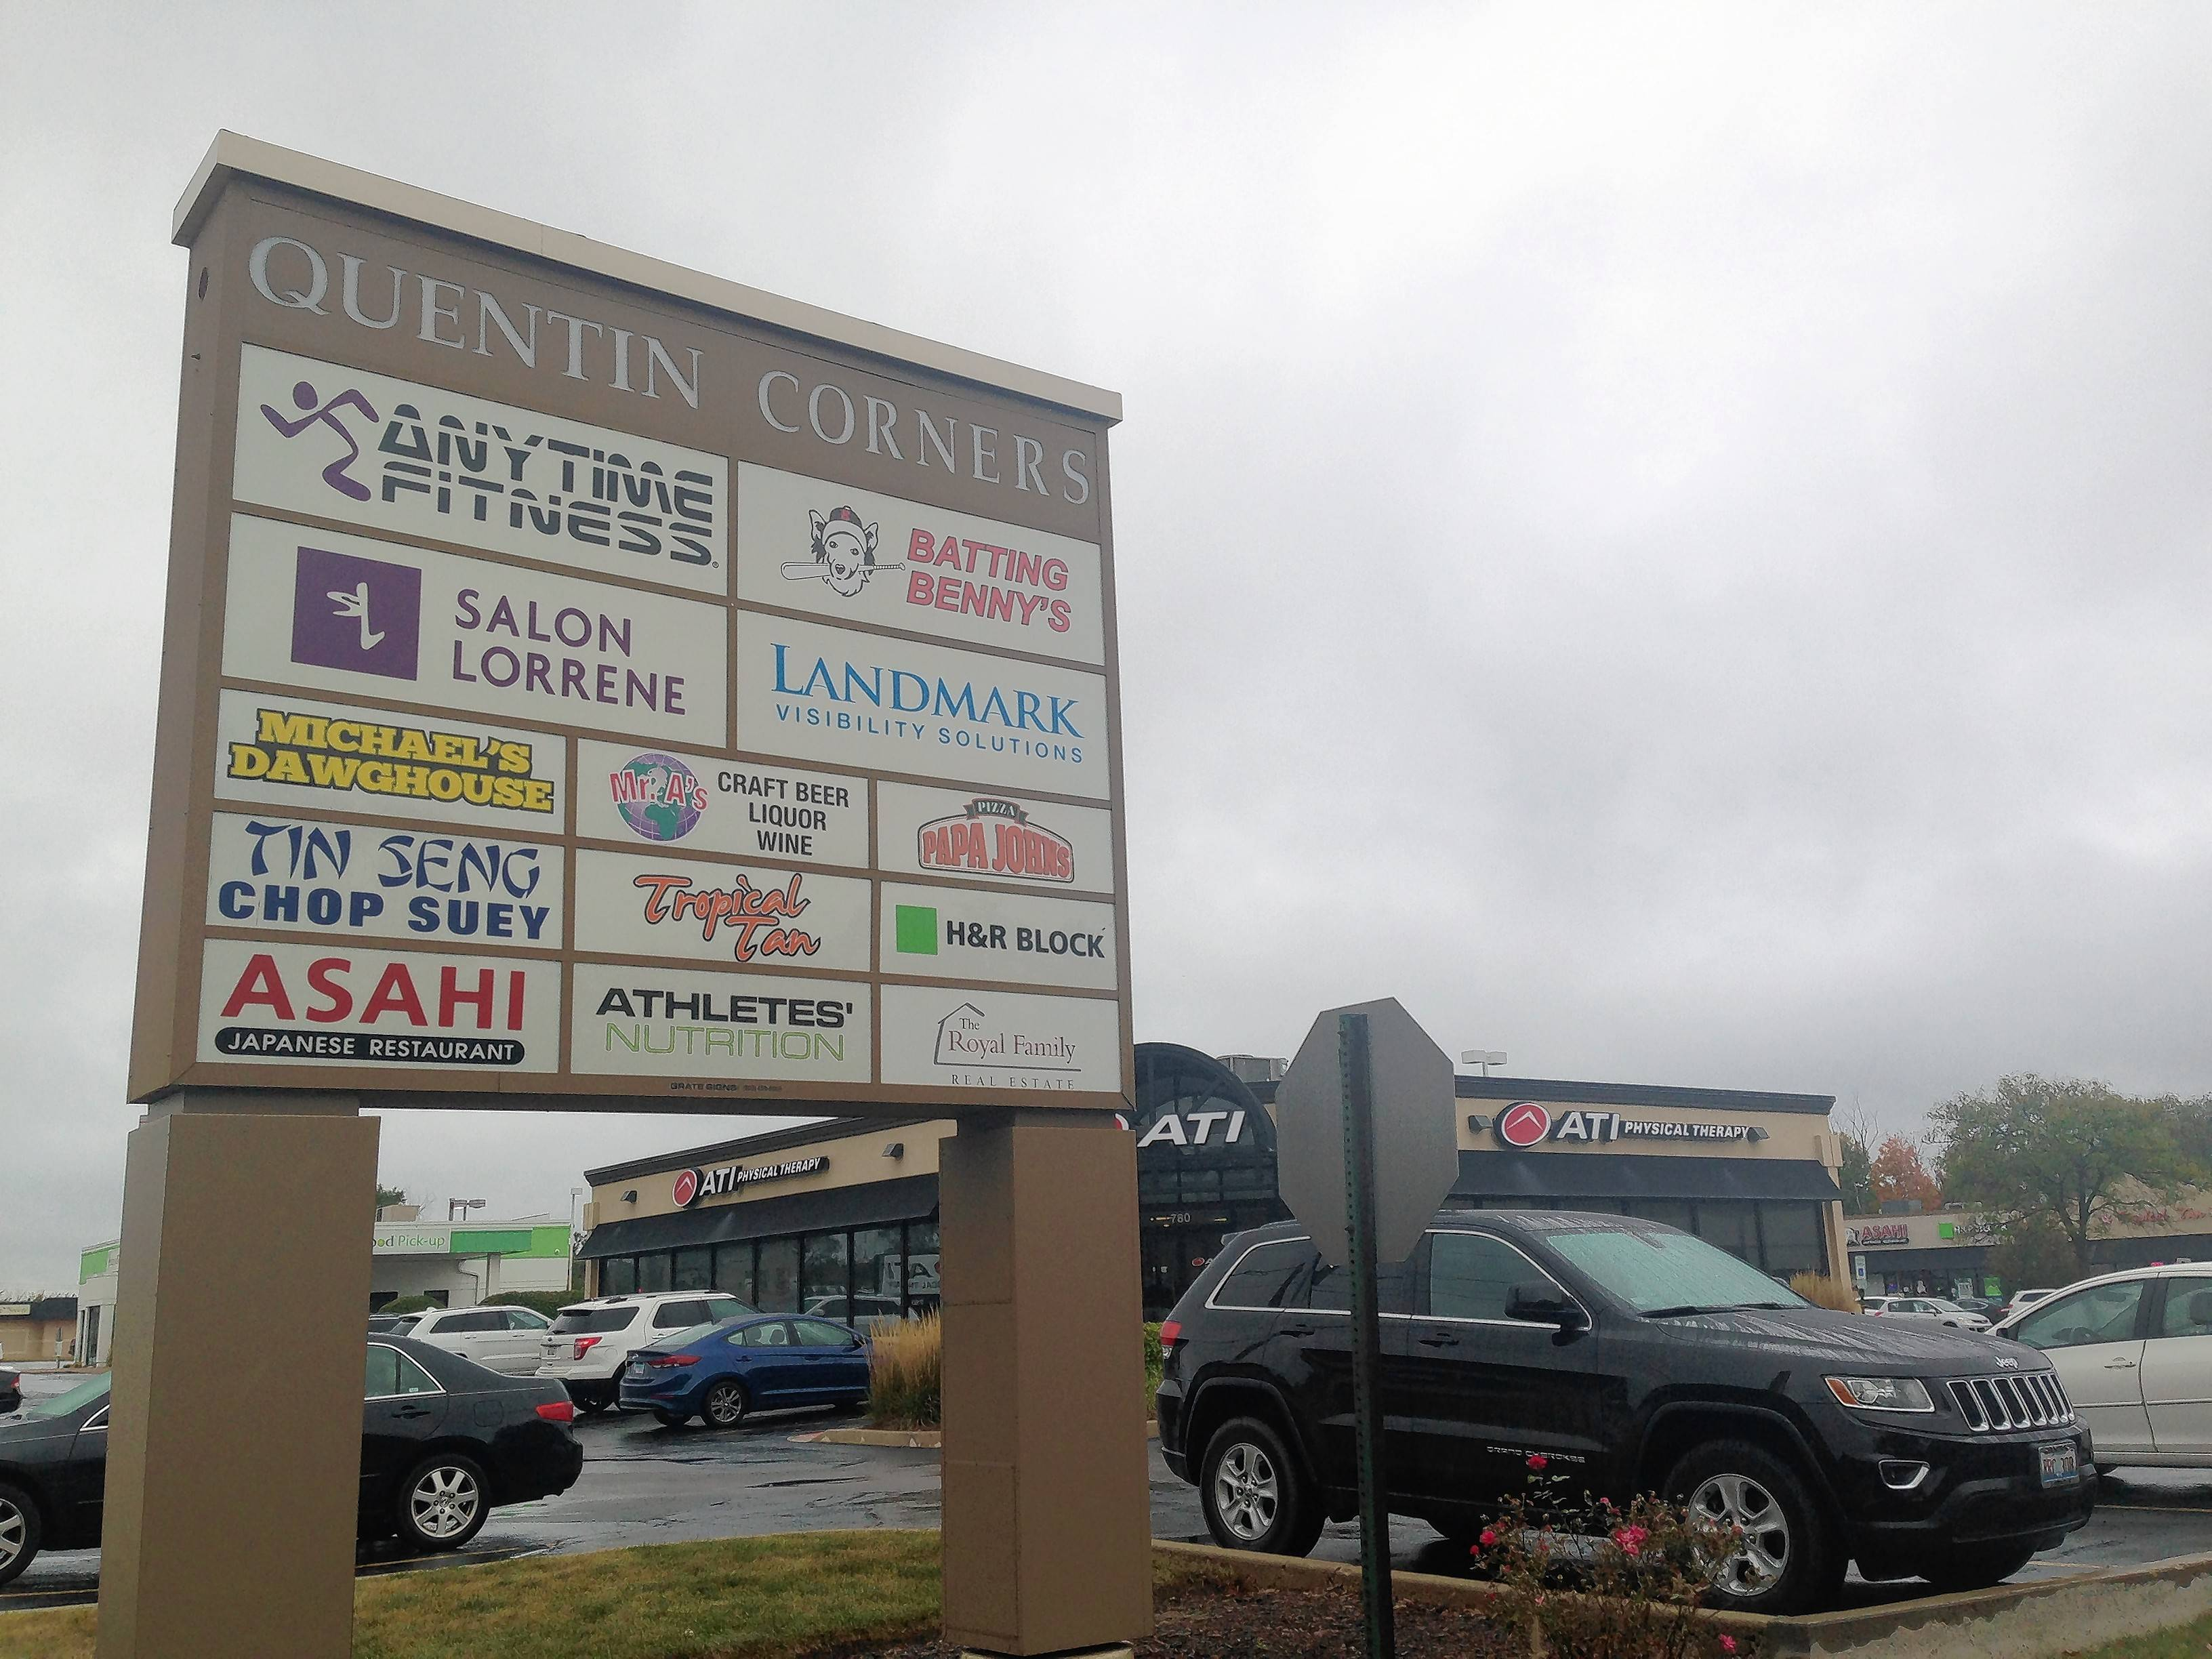 An animal hospital proposed for the Quentin Corners mall in Palatine has received a thumbs-up from a advisory village panel. The village council is to formally consider the proposal Oct. 16.